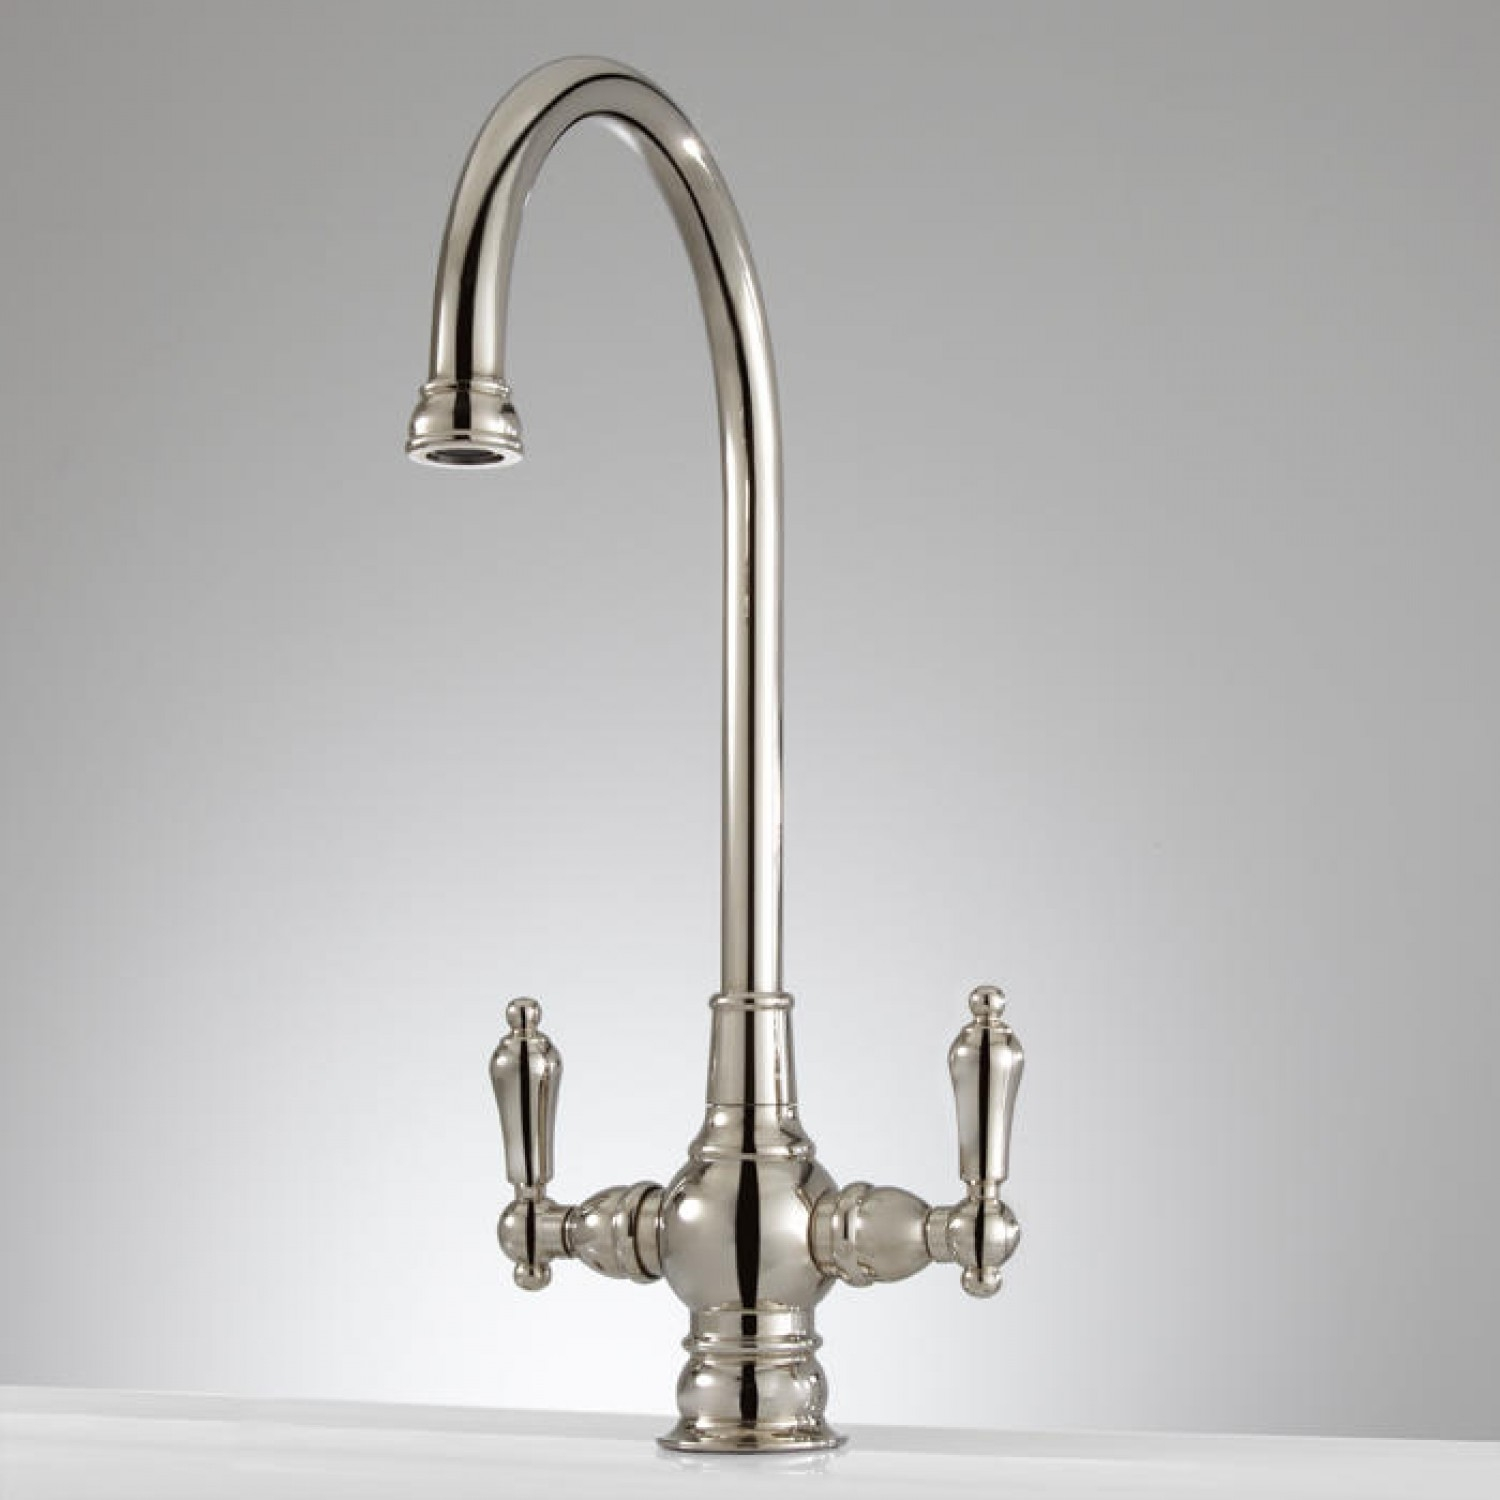 Ideas, faucet kitchen faucet white finish pertaining to proportions 1500 x 1500  .